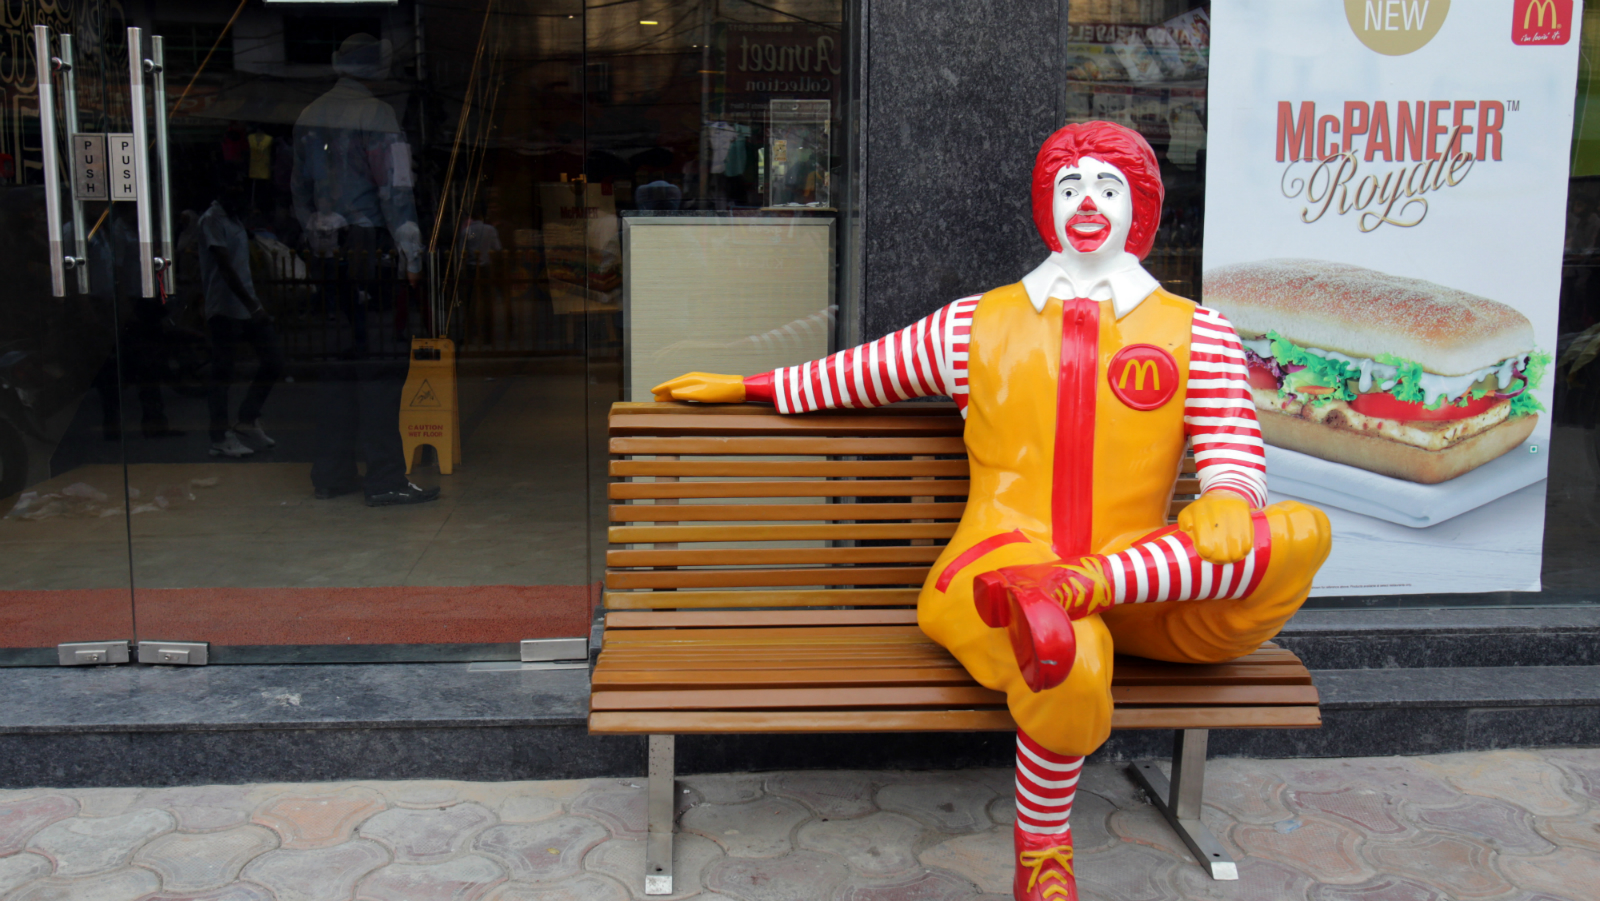 A 'Ronald McDonald' figure sits on a bench outside the newly opened, McDonald's first ever vegetarian-only restaurant near the Golden Temple (not pictured), the holiest of Sikh shrines in Amritsar, India, 12 April 2014. According to news reports, the McDonald's fast food restaurant in Amritsar solely offers vegetarian food in respect of the sanctity of the Sikh's holy city of Amritsar and area near the holiest Sikh shrine.